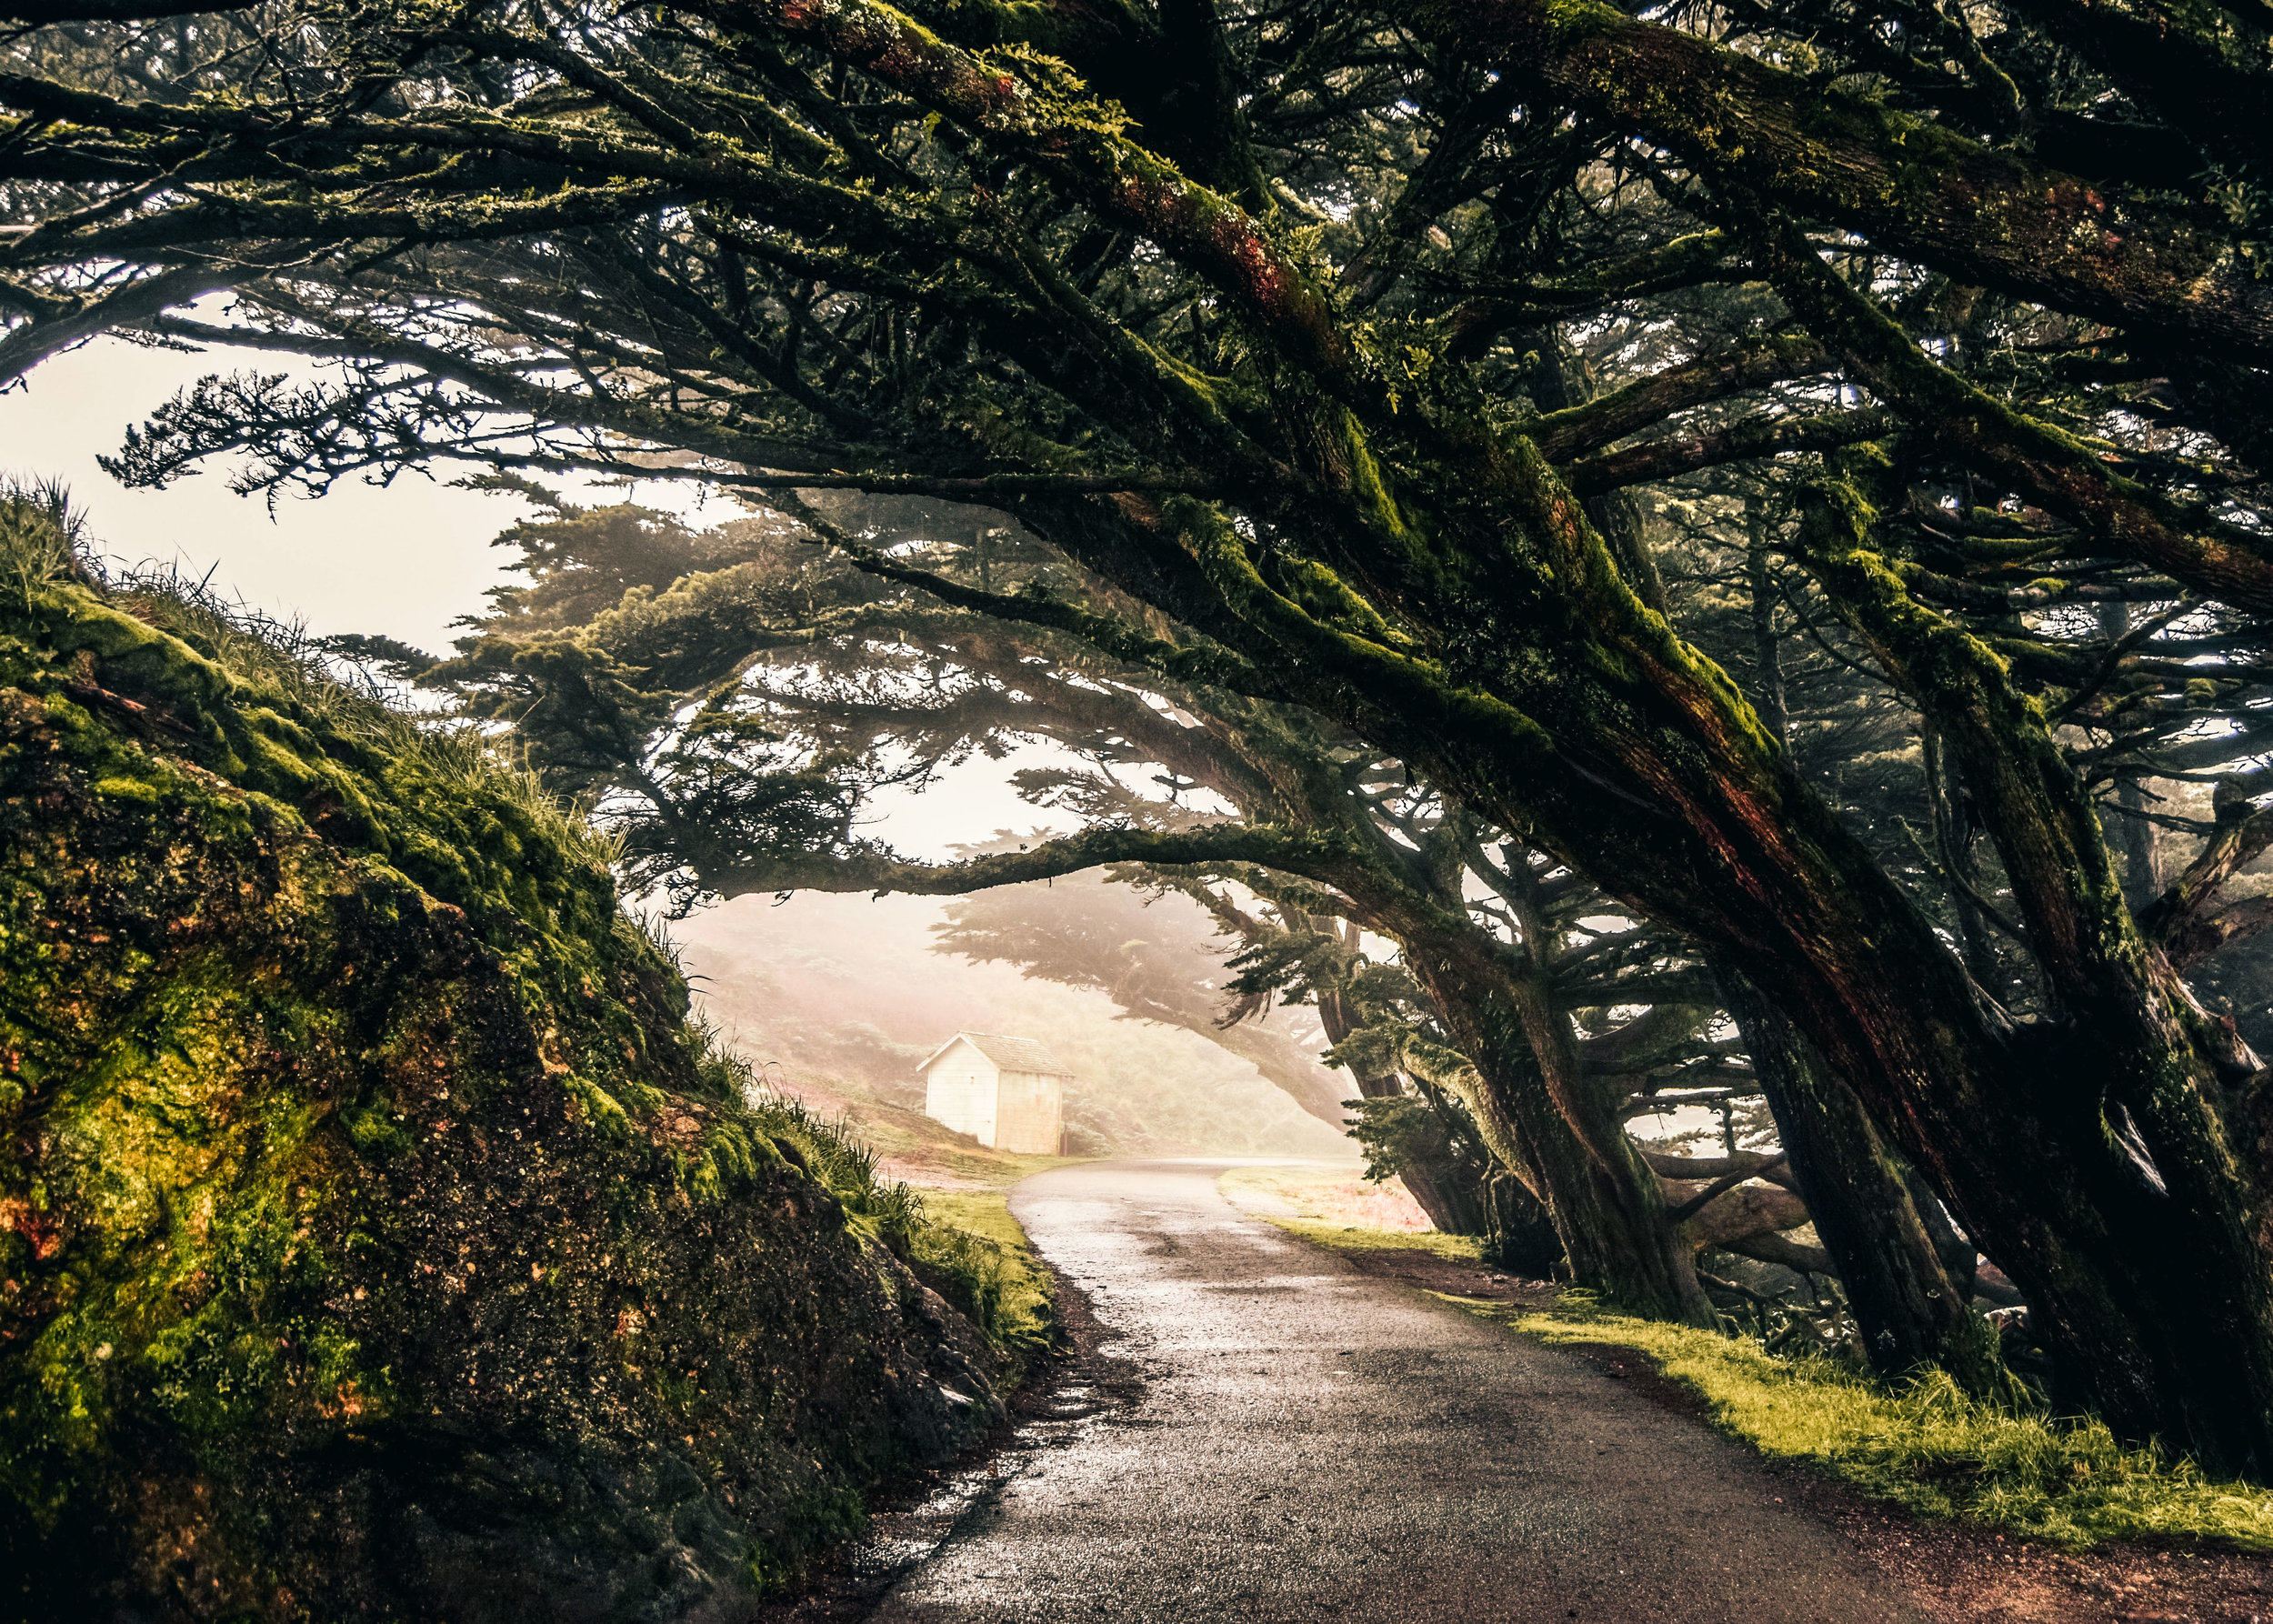 PointReyes_treetunnel_green.jpg